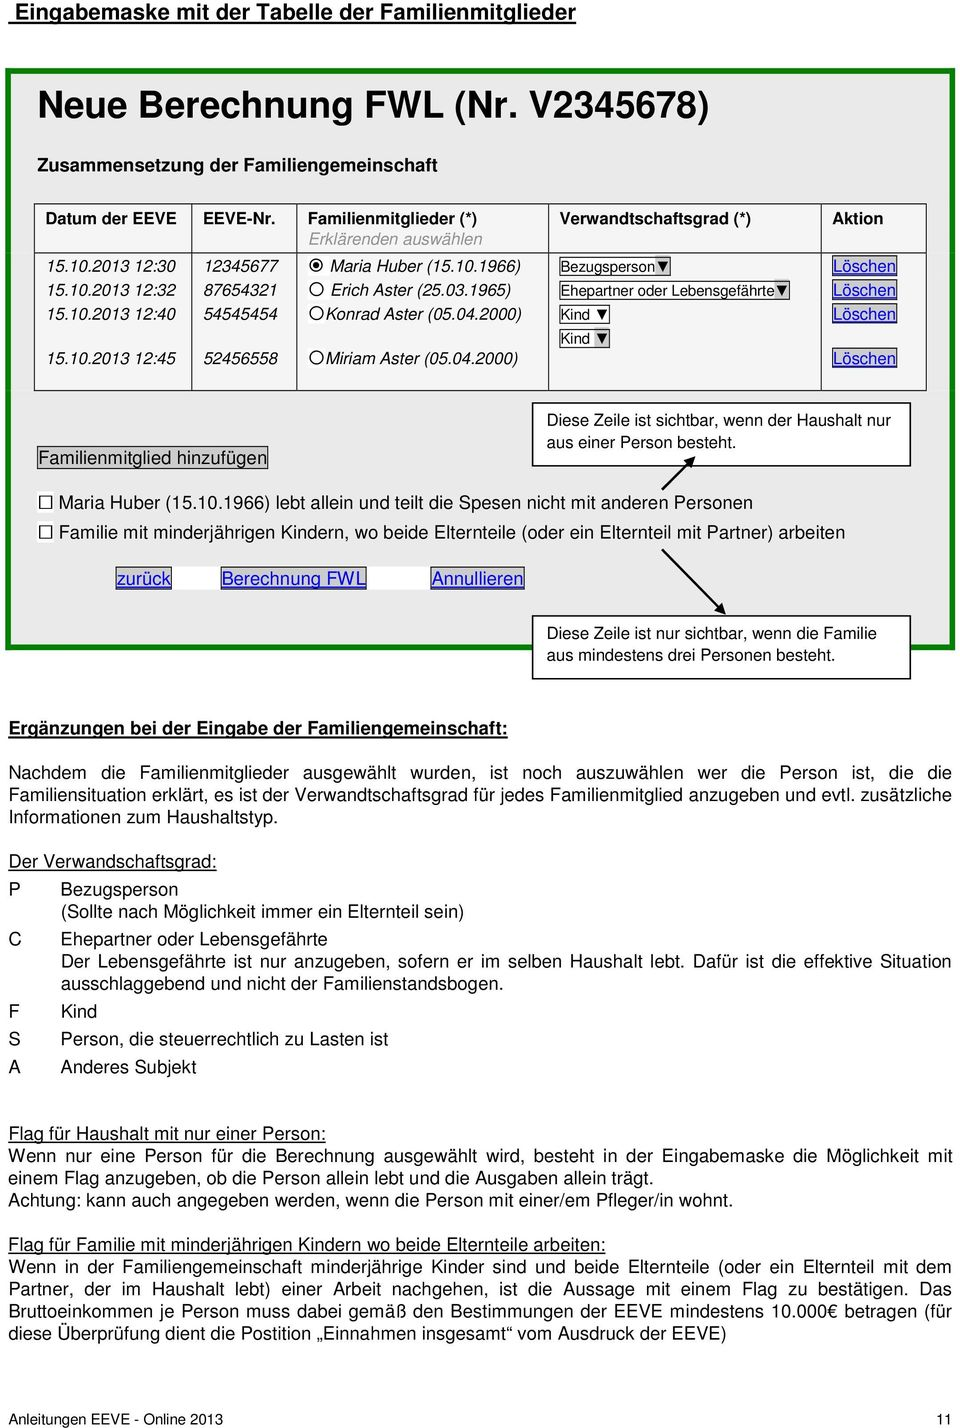 Fein Strategische Planungsrahmenvorlage Bilder - Entry Level Resume ...